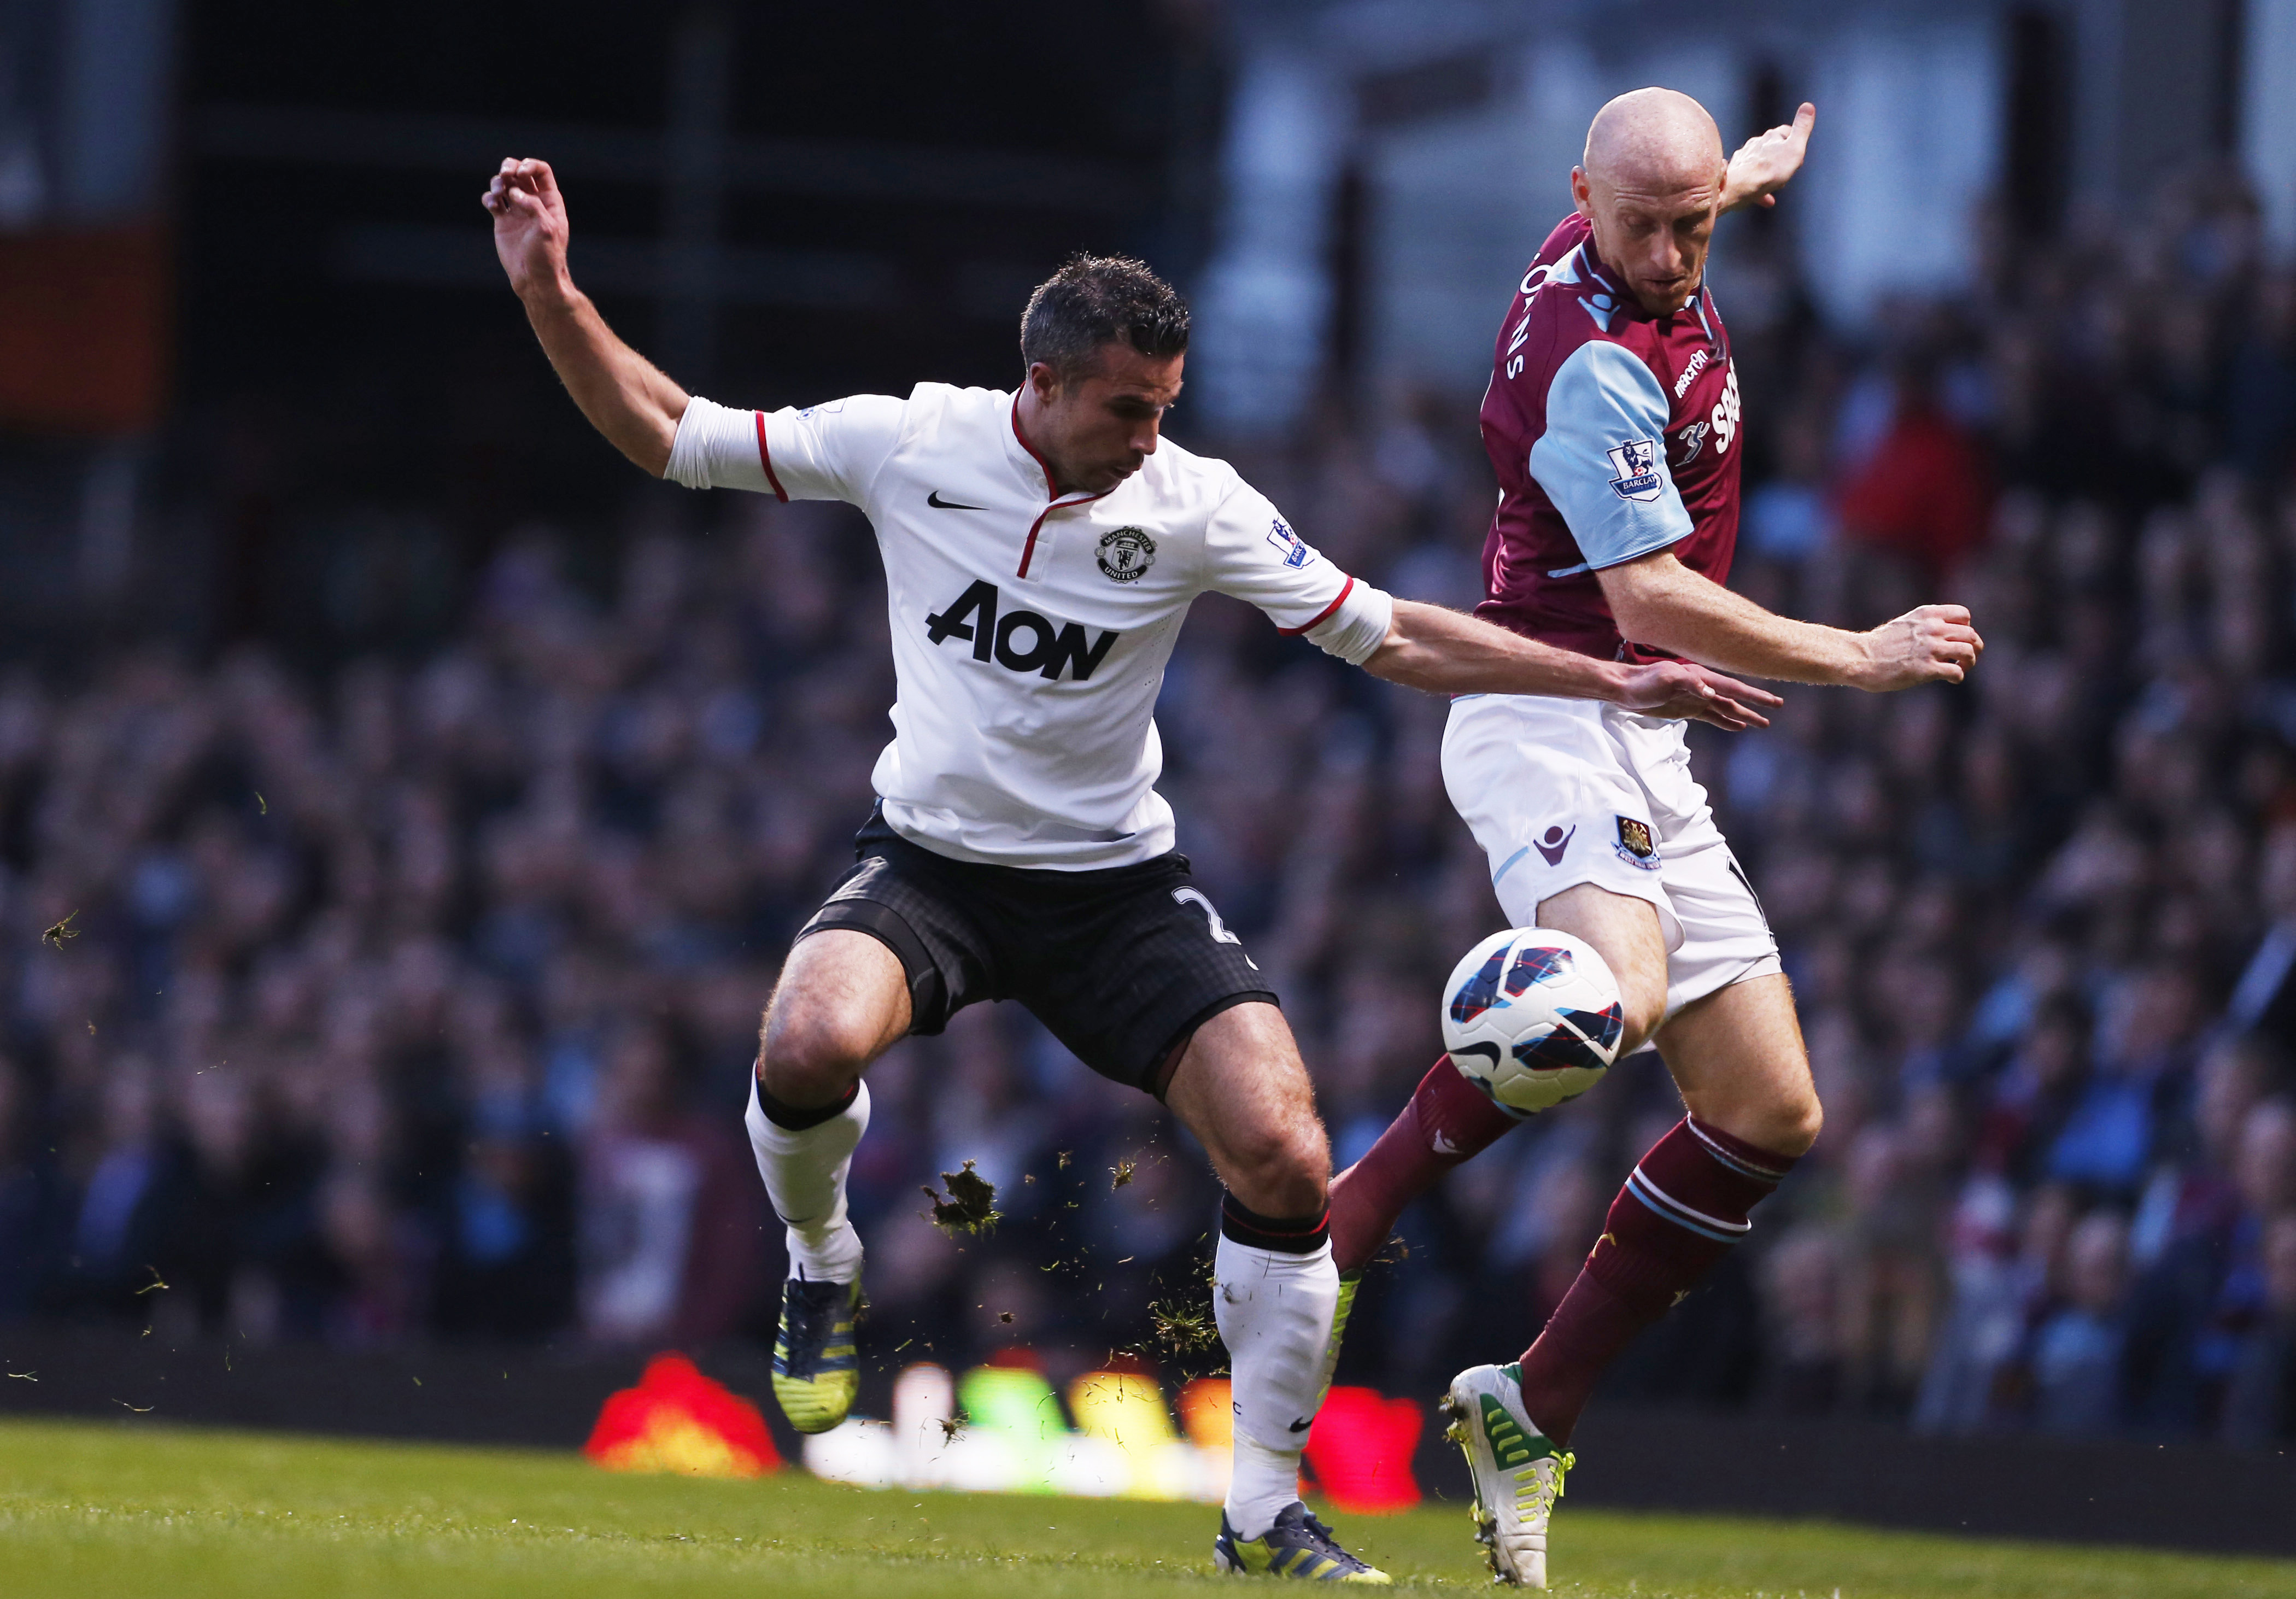 West Ham United v Manchester United - Barclays Premier League